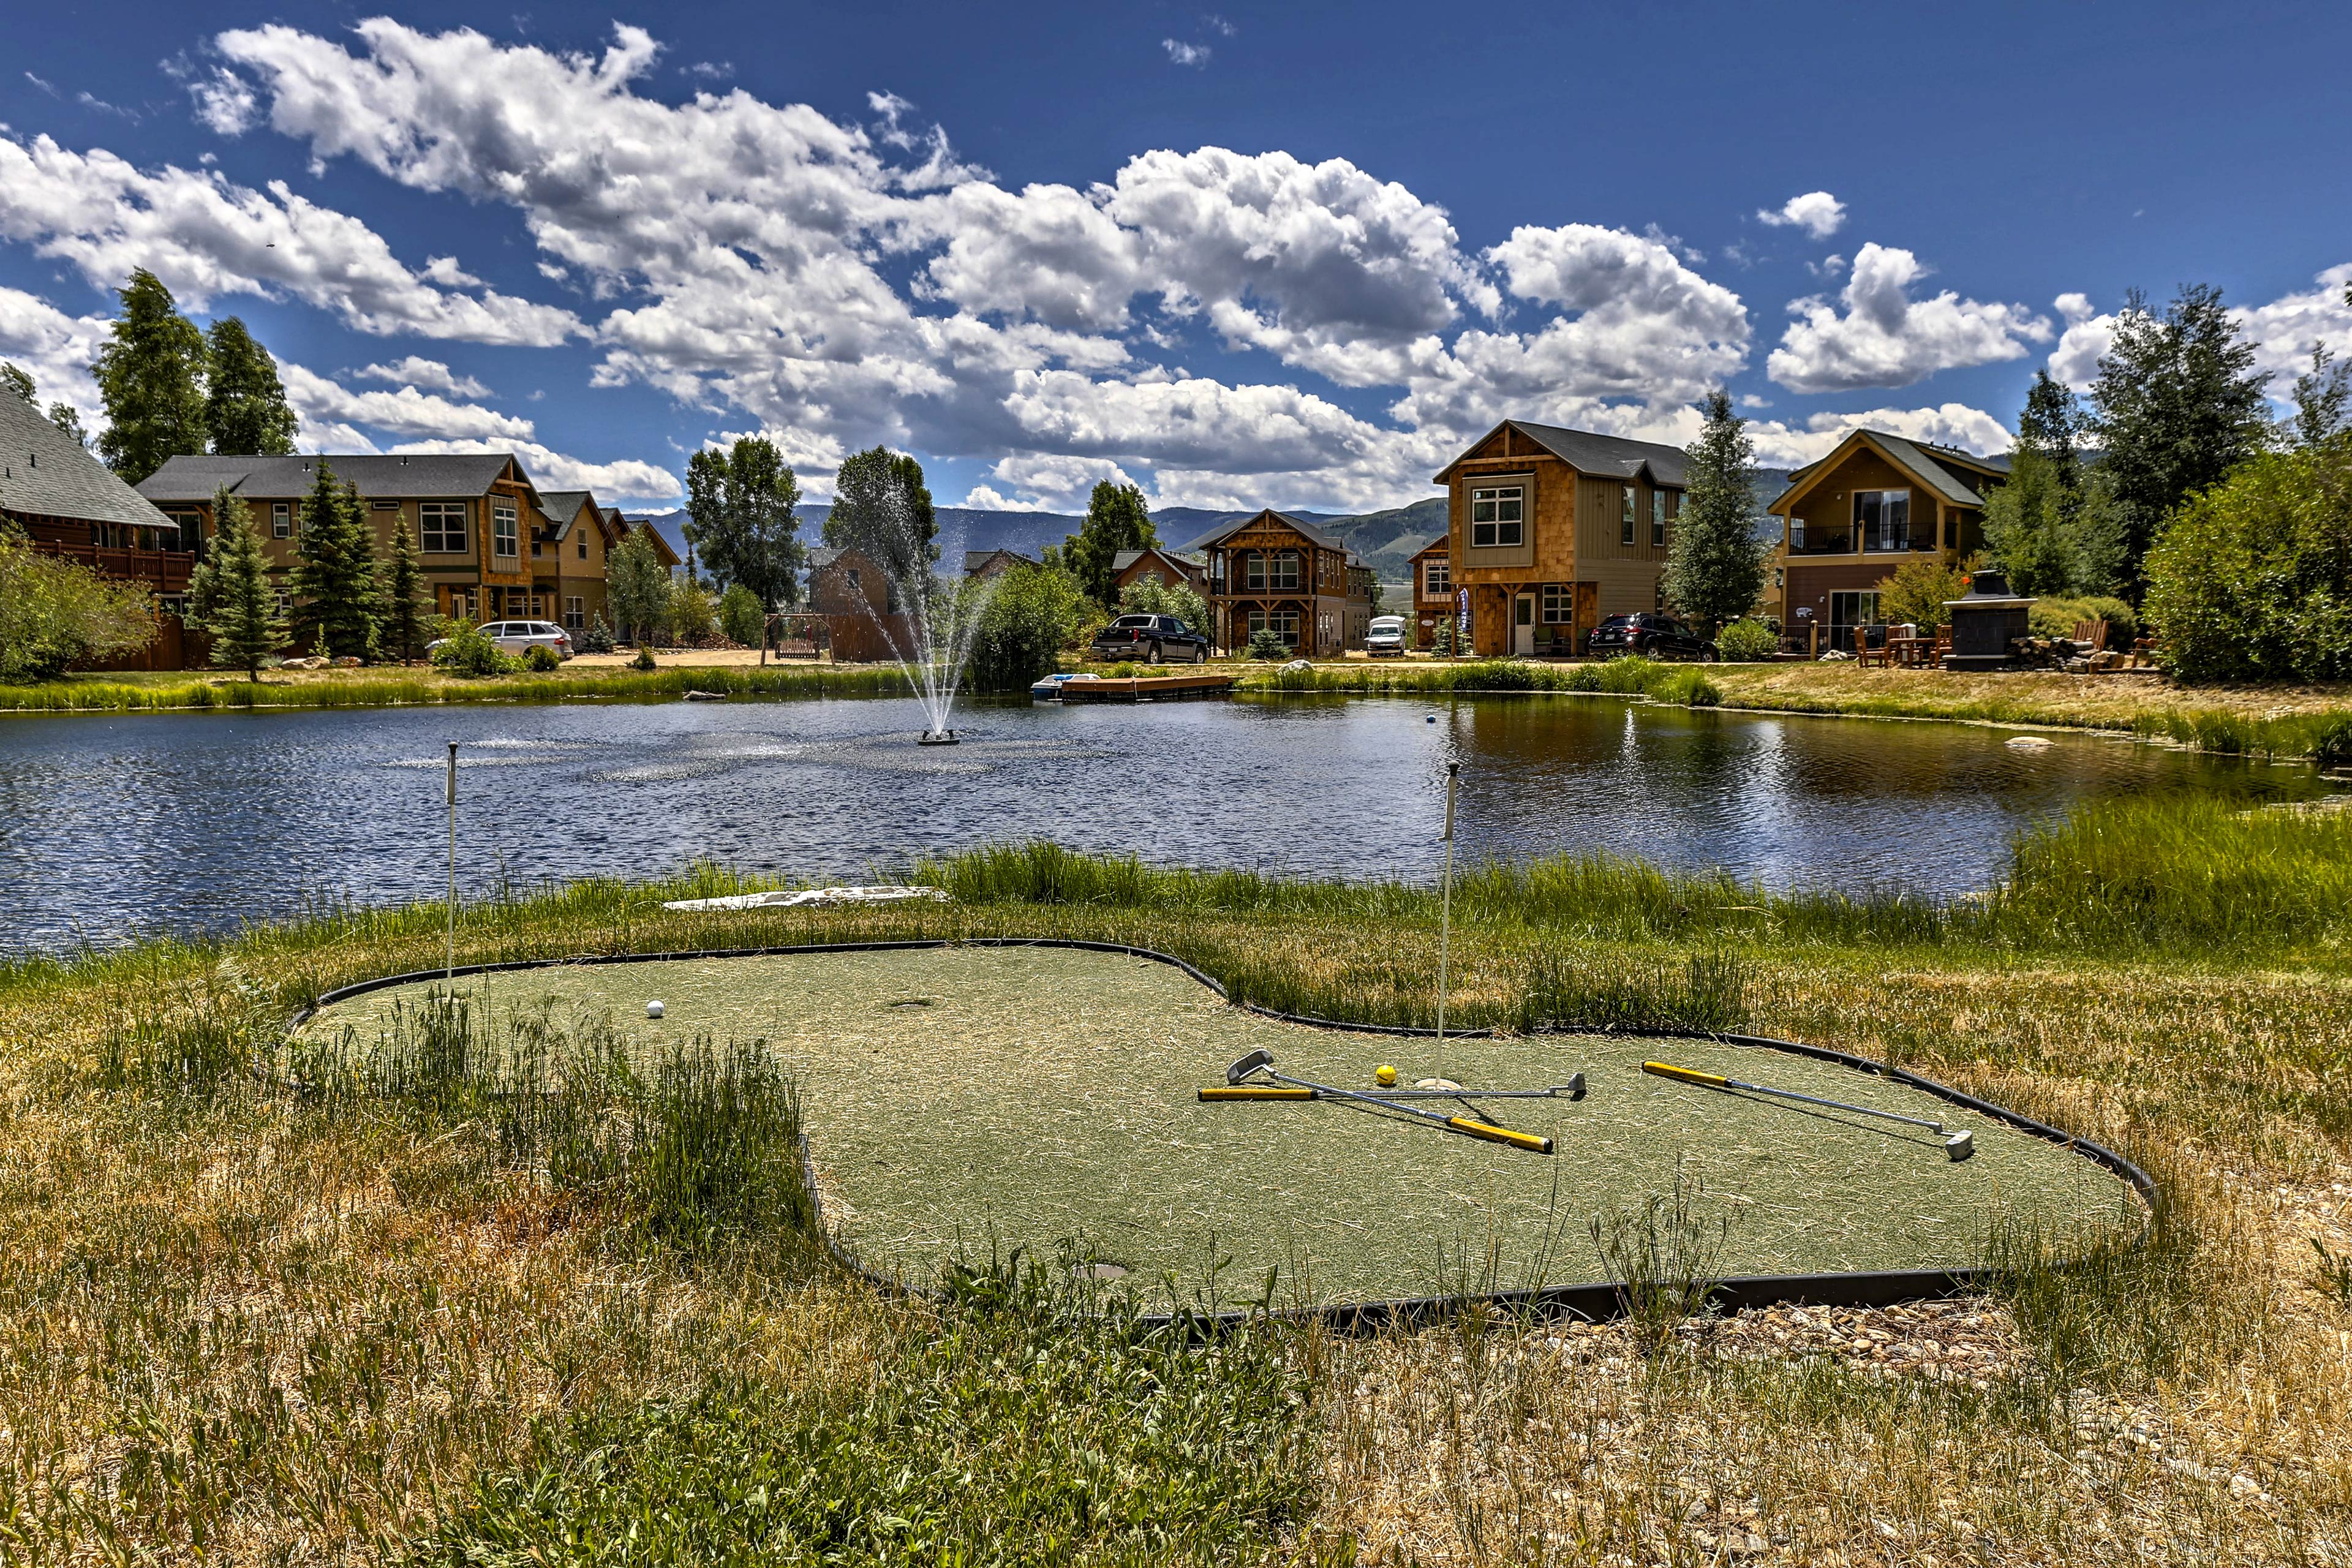 Hone your mini golf skills on the green beside the pond.